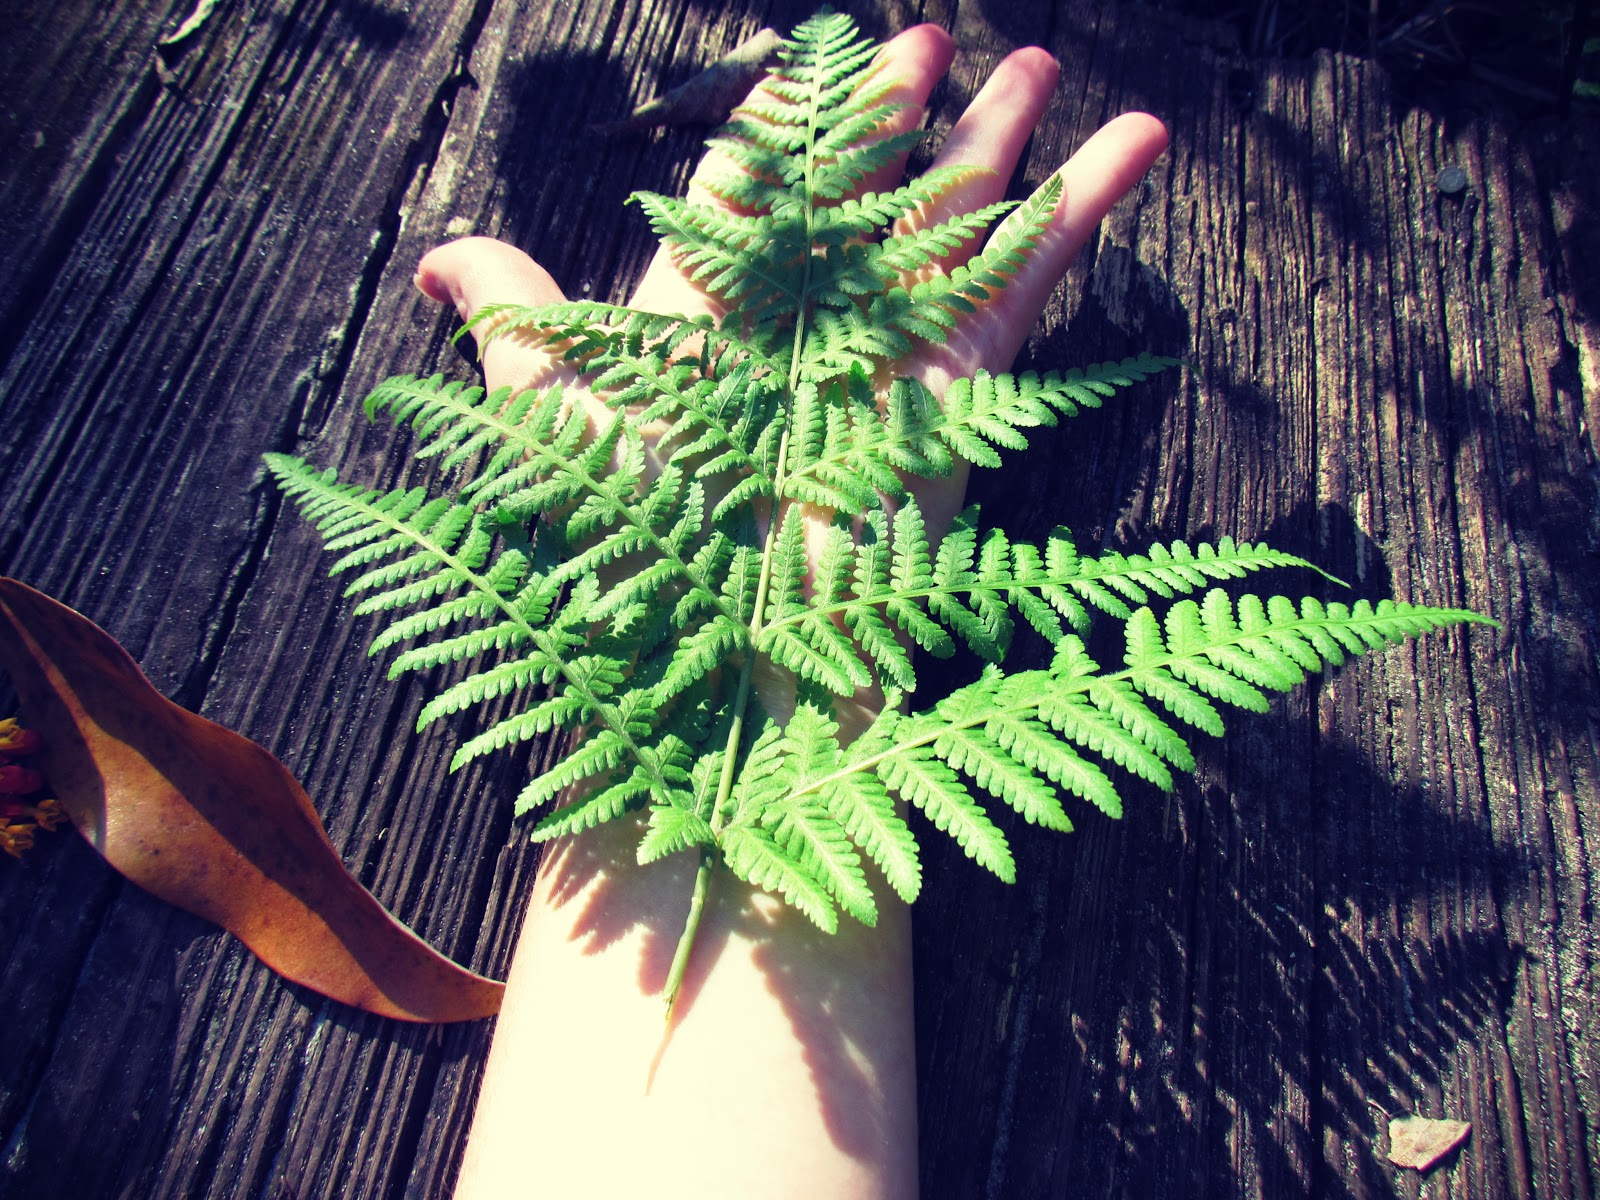 A female arm with pale skin and a fern leaf stretching across the arm in a natural body art pose with woodland textiles and crisp autumn leaves on a hiking trail in Hammock Park in Dunedin, Florida on a wilderness hiking adventure